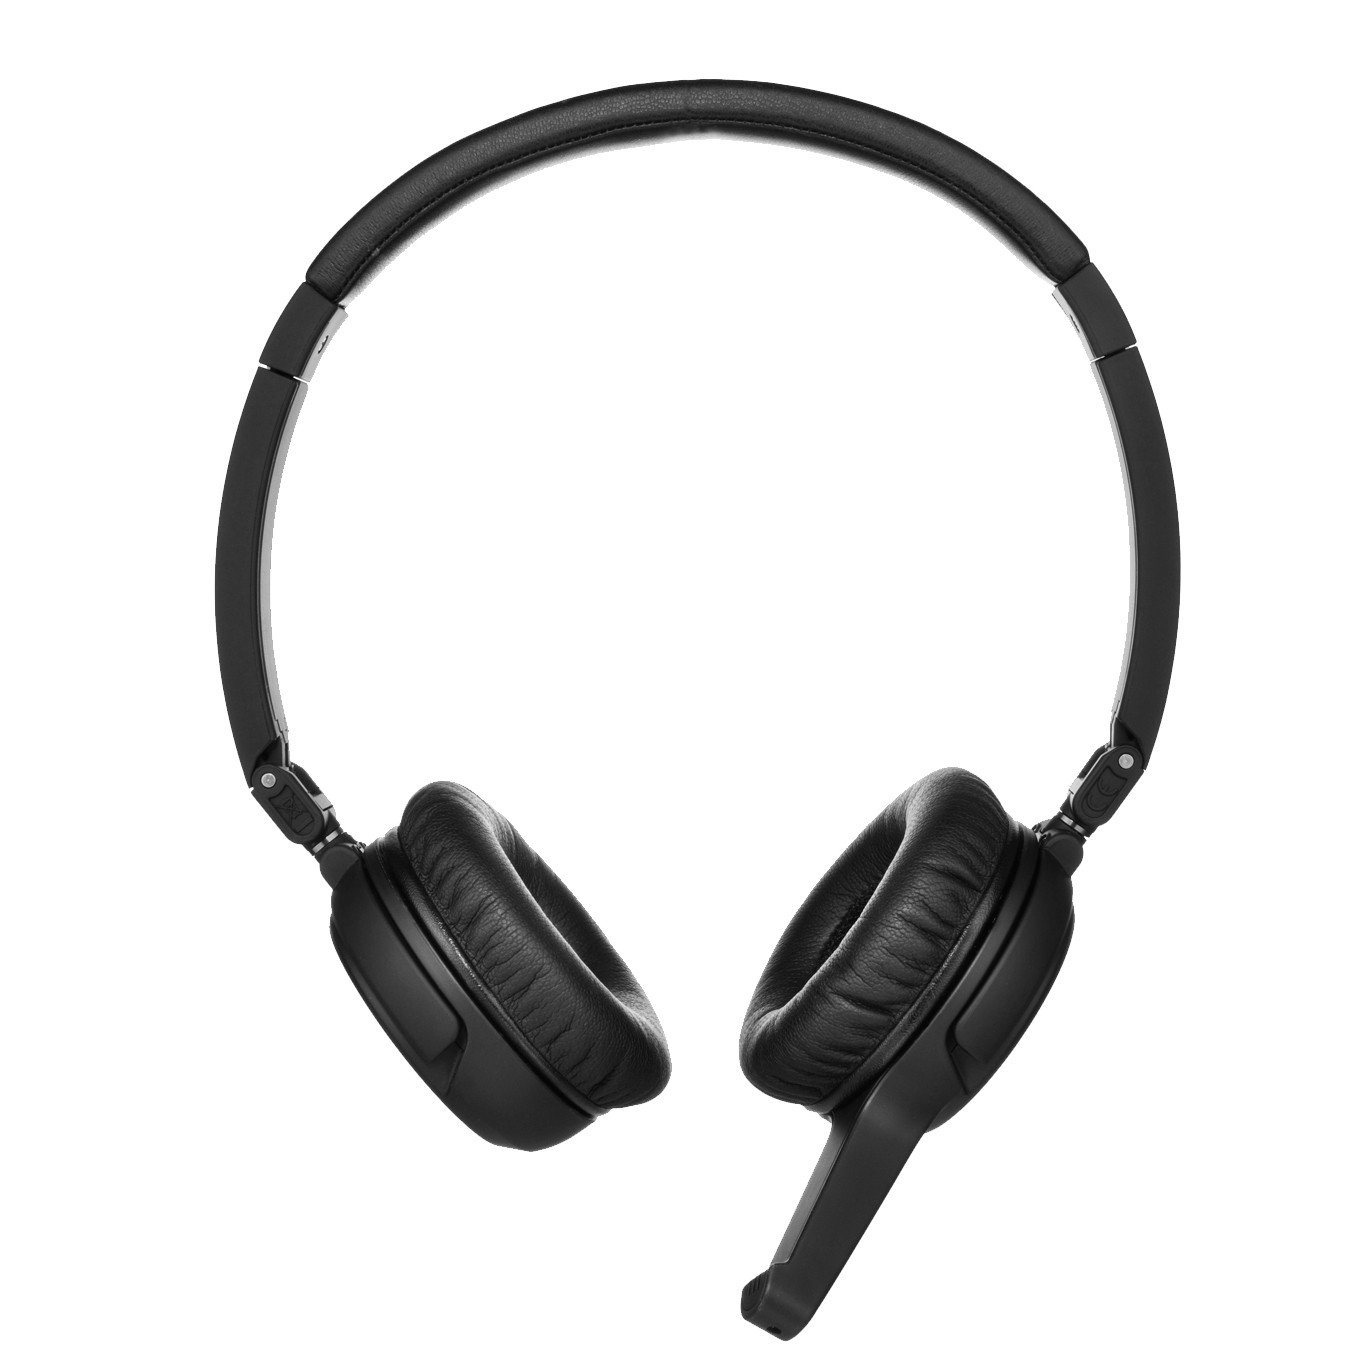 Image of SoundMAGIC-BT20-Headphones